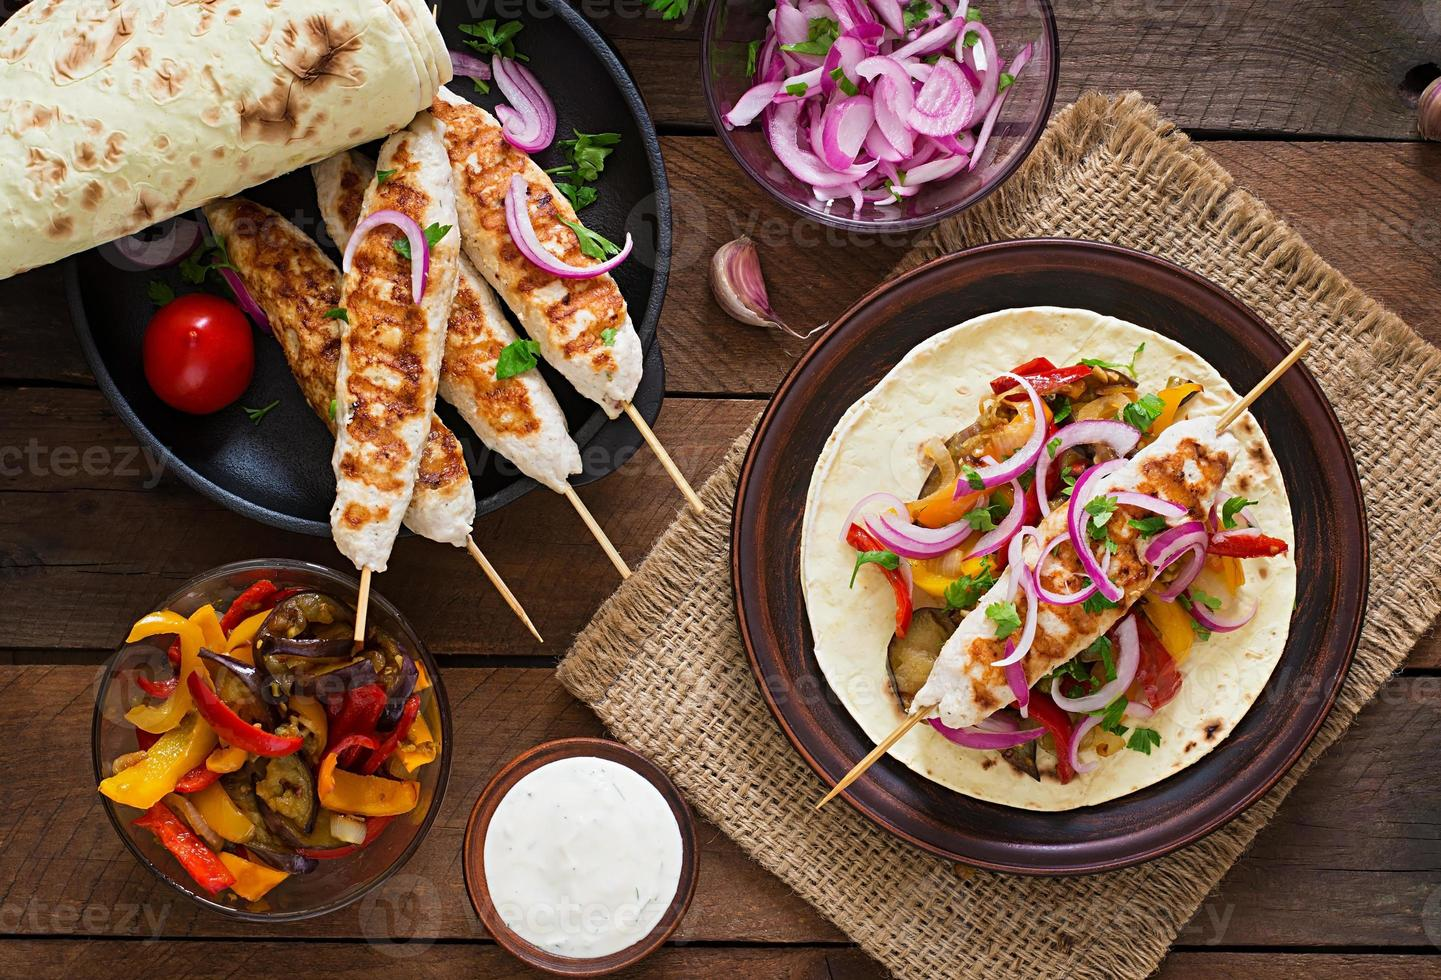 Chicken Kebab With Grilled Vegetables And Tortilla Wrap Stock Photo